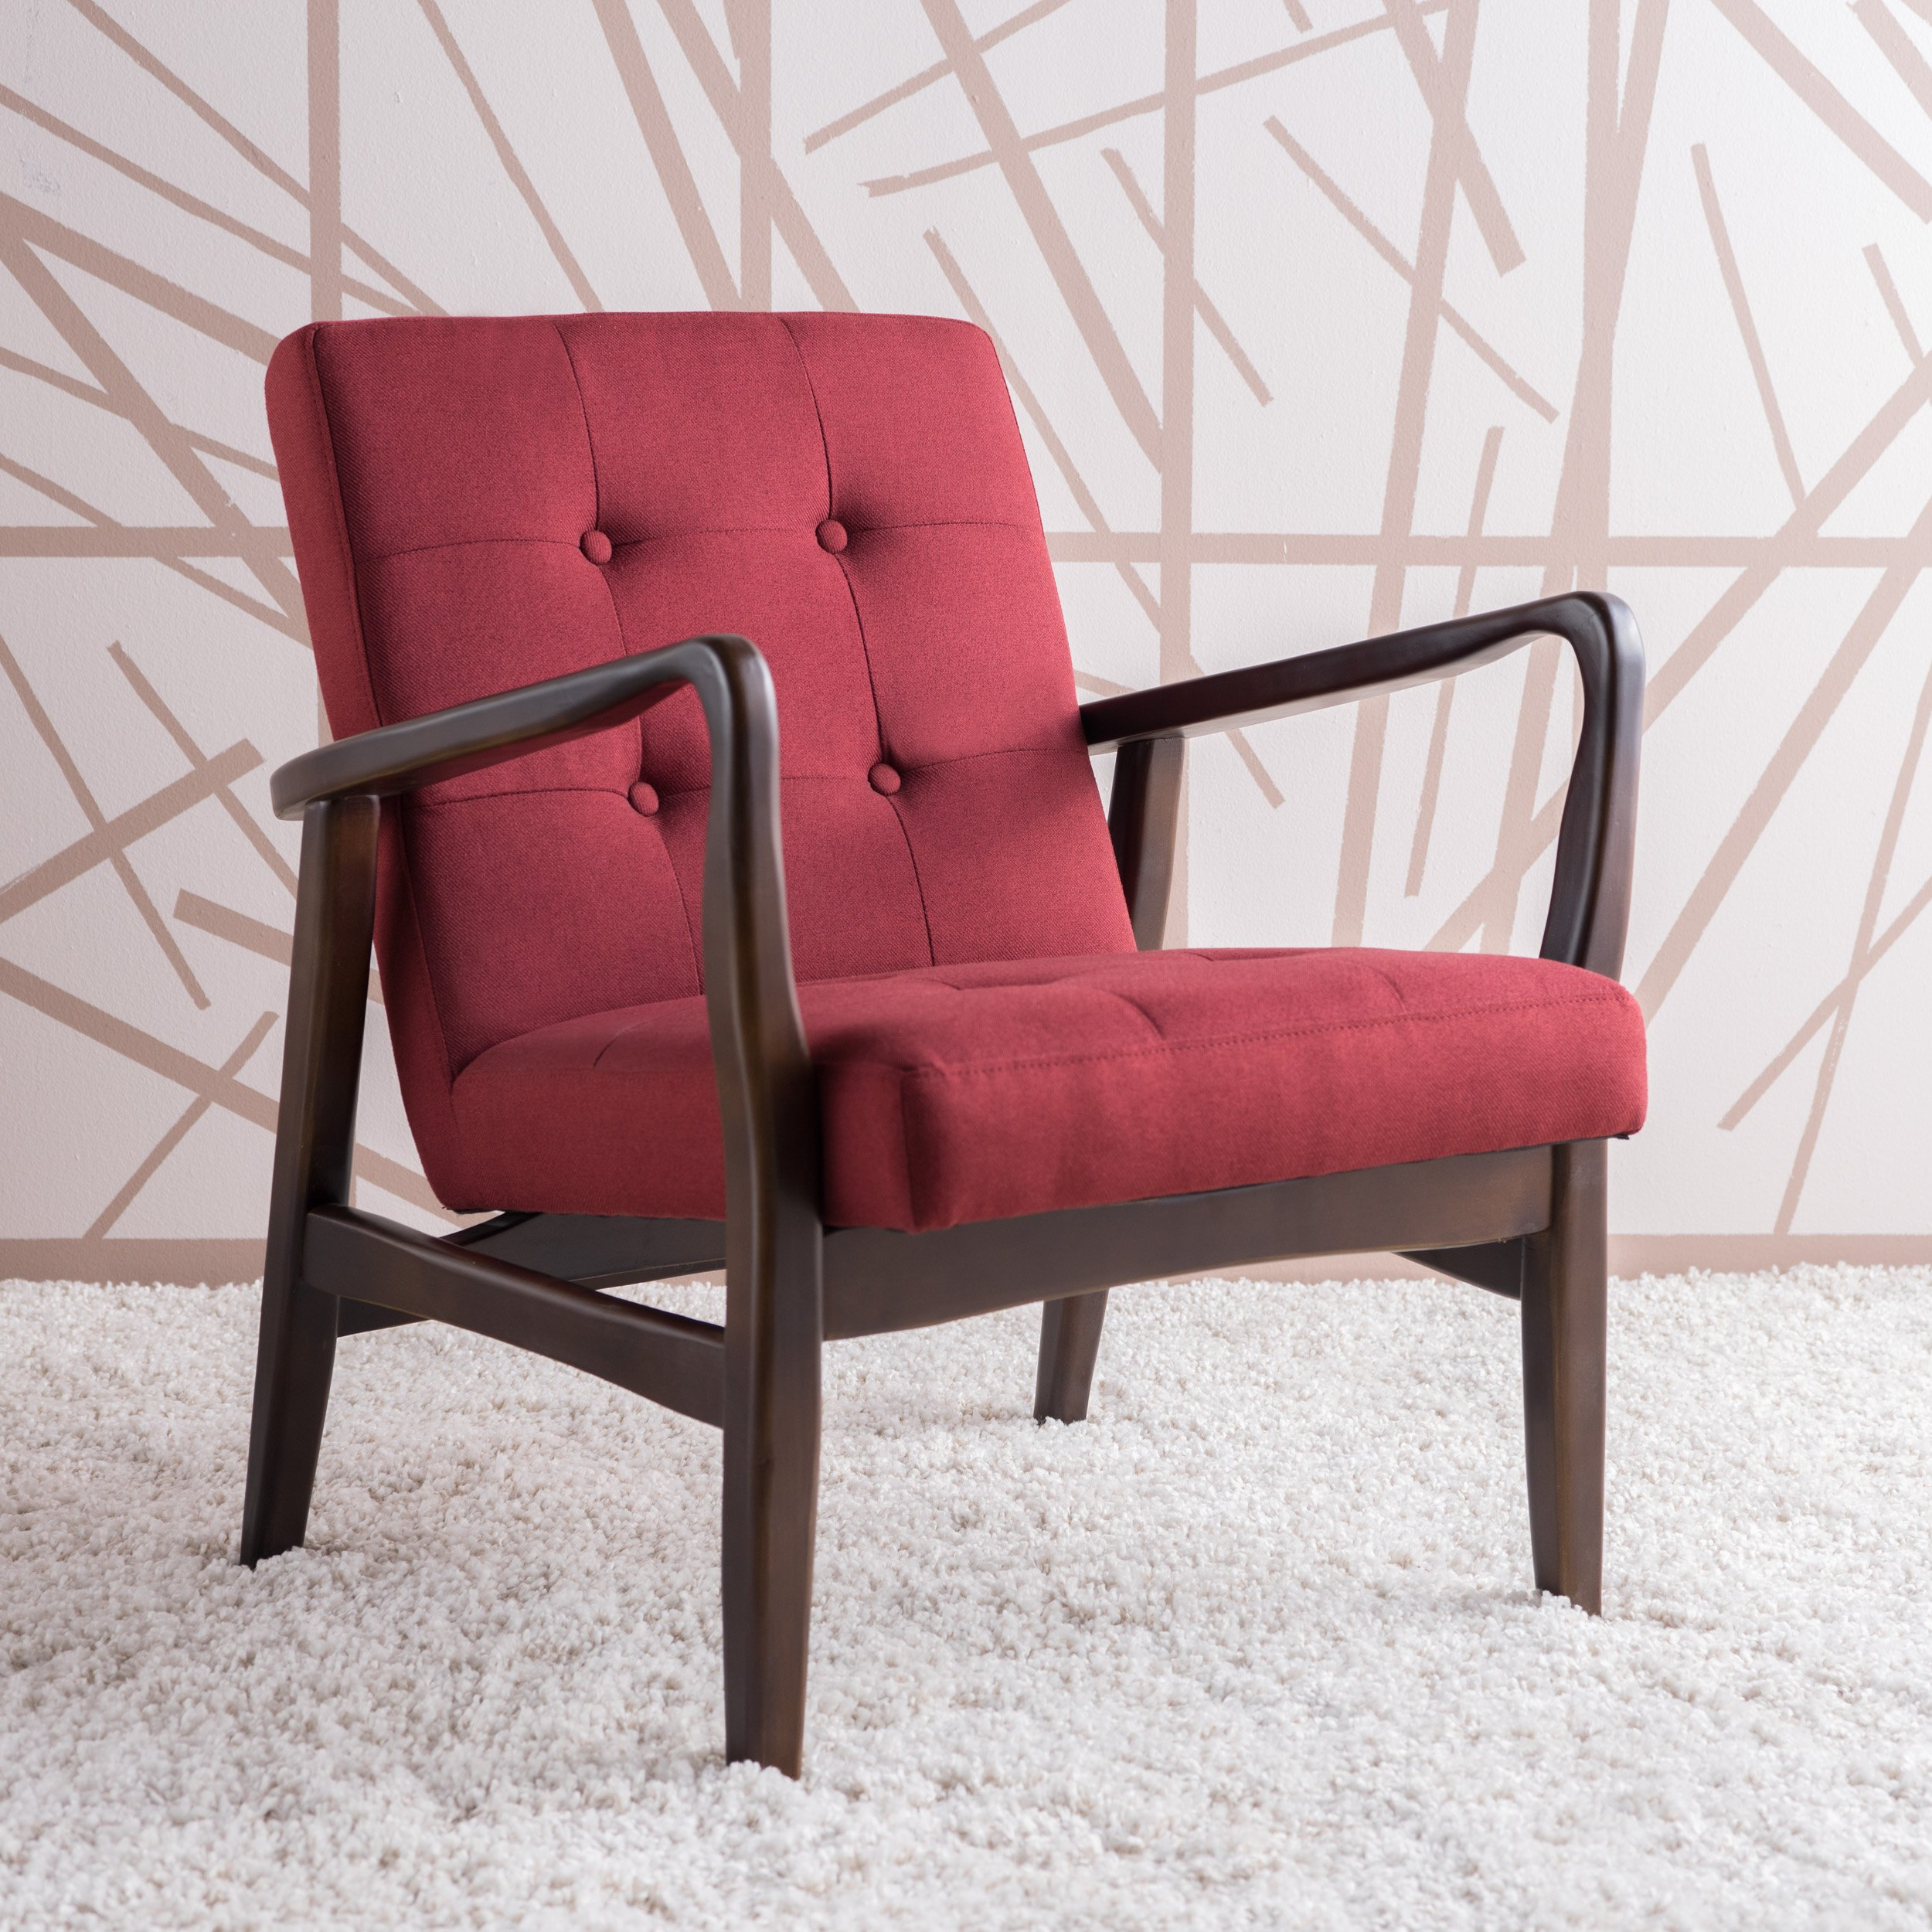 Christopher Knight Home Conrad Deep Red Fabric Mid Century Modern Club Chair by Christopher Knight Home